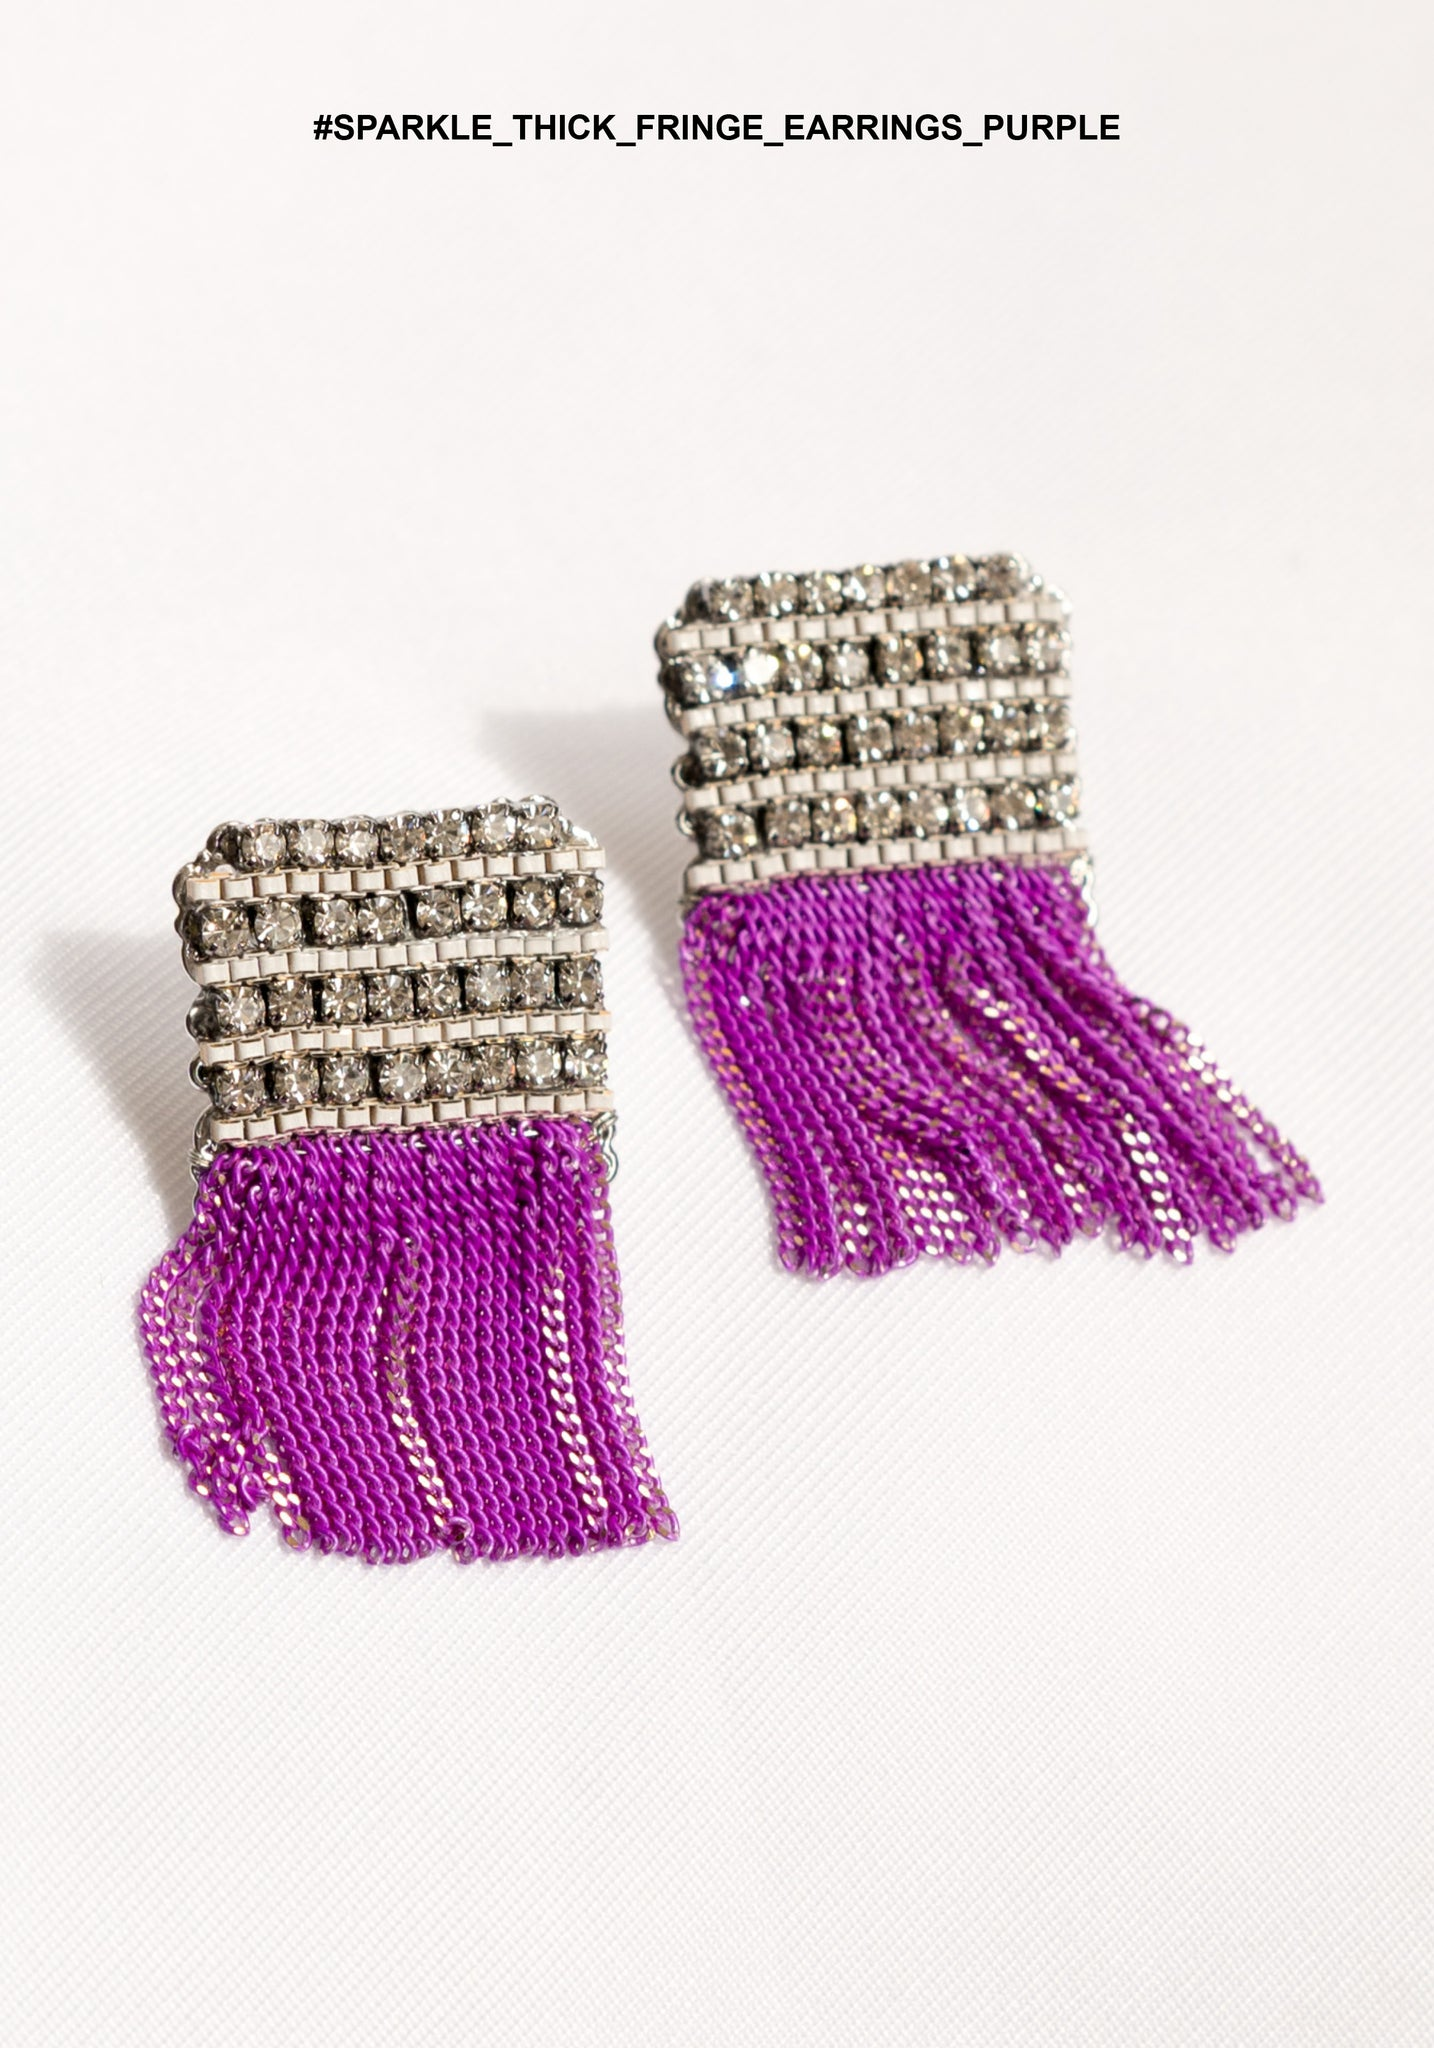 Sparkle Thick Fringe Earrings Purple - whoami